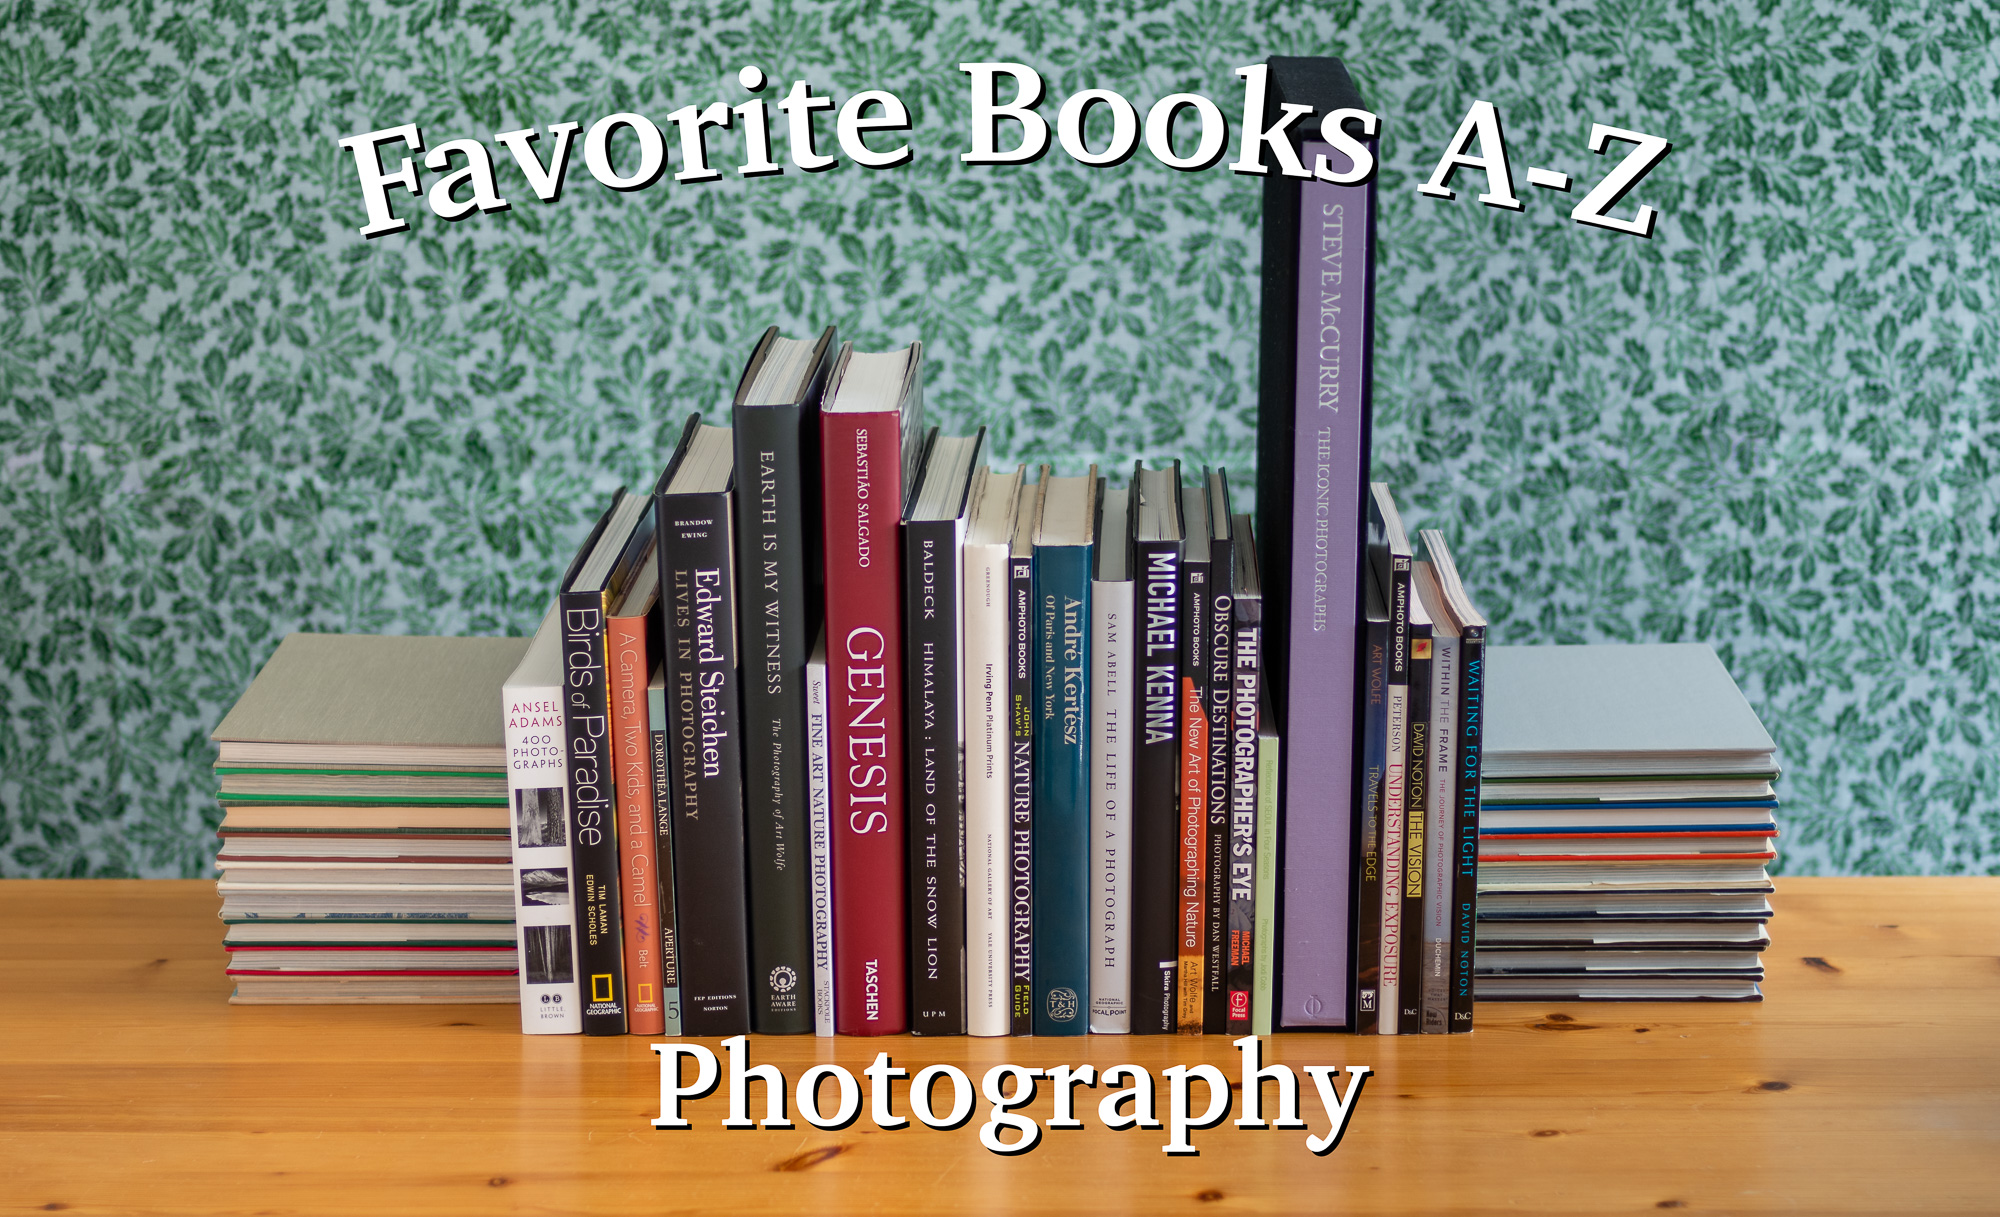 Some of my favorite photography books, from A to Z.